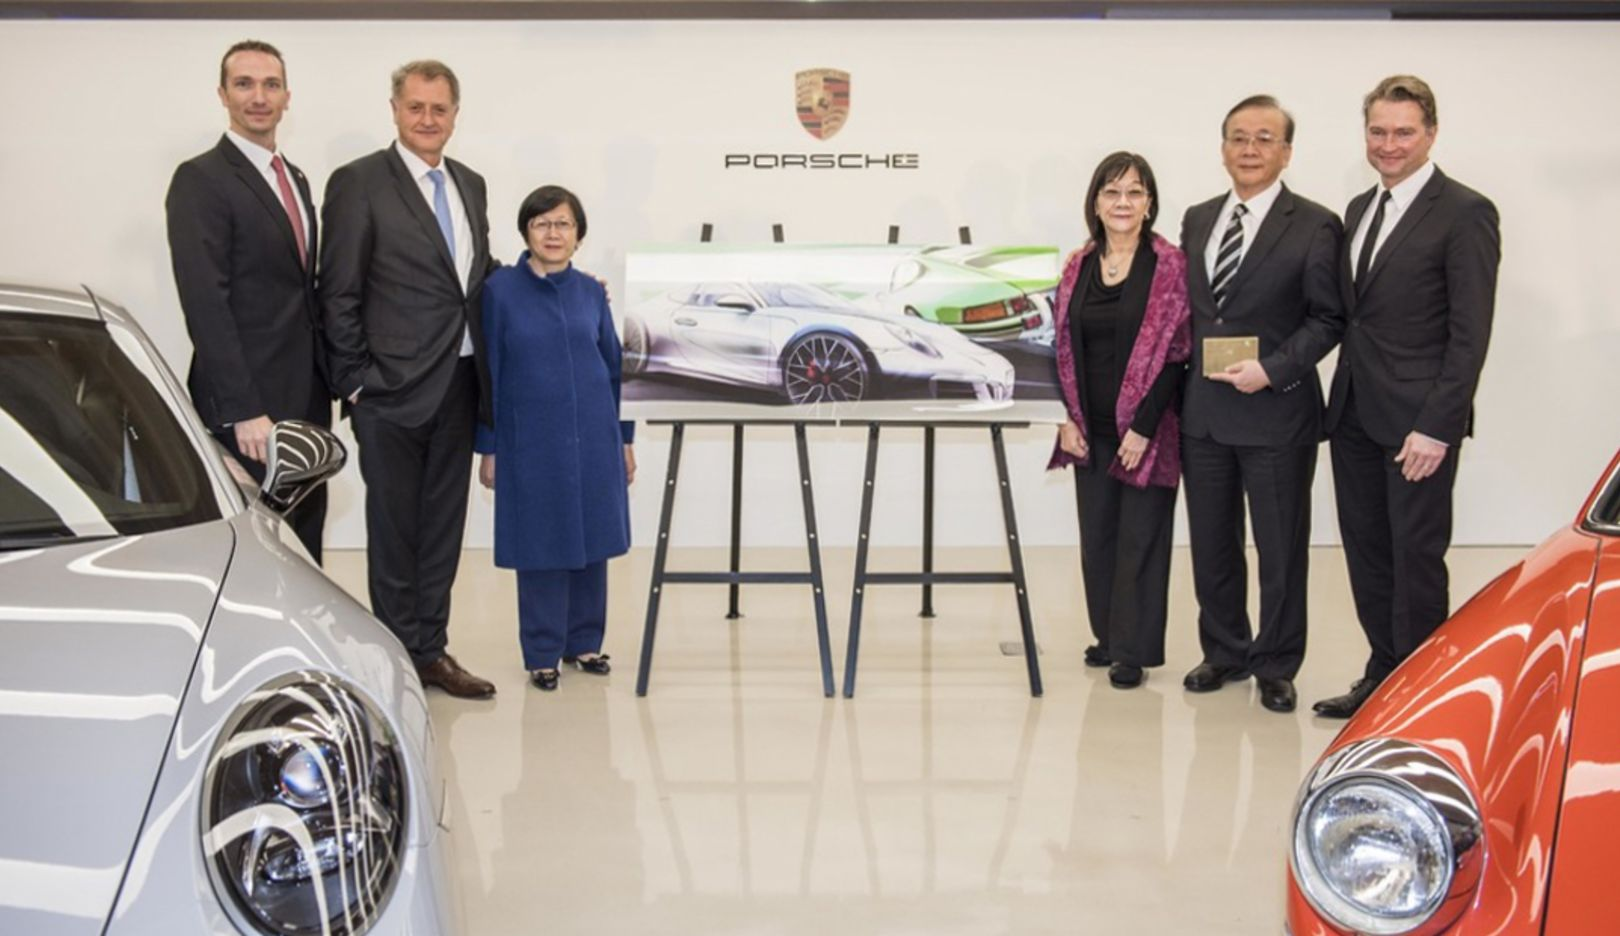 Martin Limpert, the new CEO of Porsche Taiwan; Detlev von Platen, Member of the Executive Board, Sales and Marketing, Porsche AG; Jane Tang, Chairman of Universal Motor Traders; Julie Tang, Chairman of Pan German Universal Motors Lts. Co., James Tang, Chairman of Universal Pan German Organization; Matthias Becker, Vice President Overseas and Emerging Markets; l-r, Porsche AG, 2017